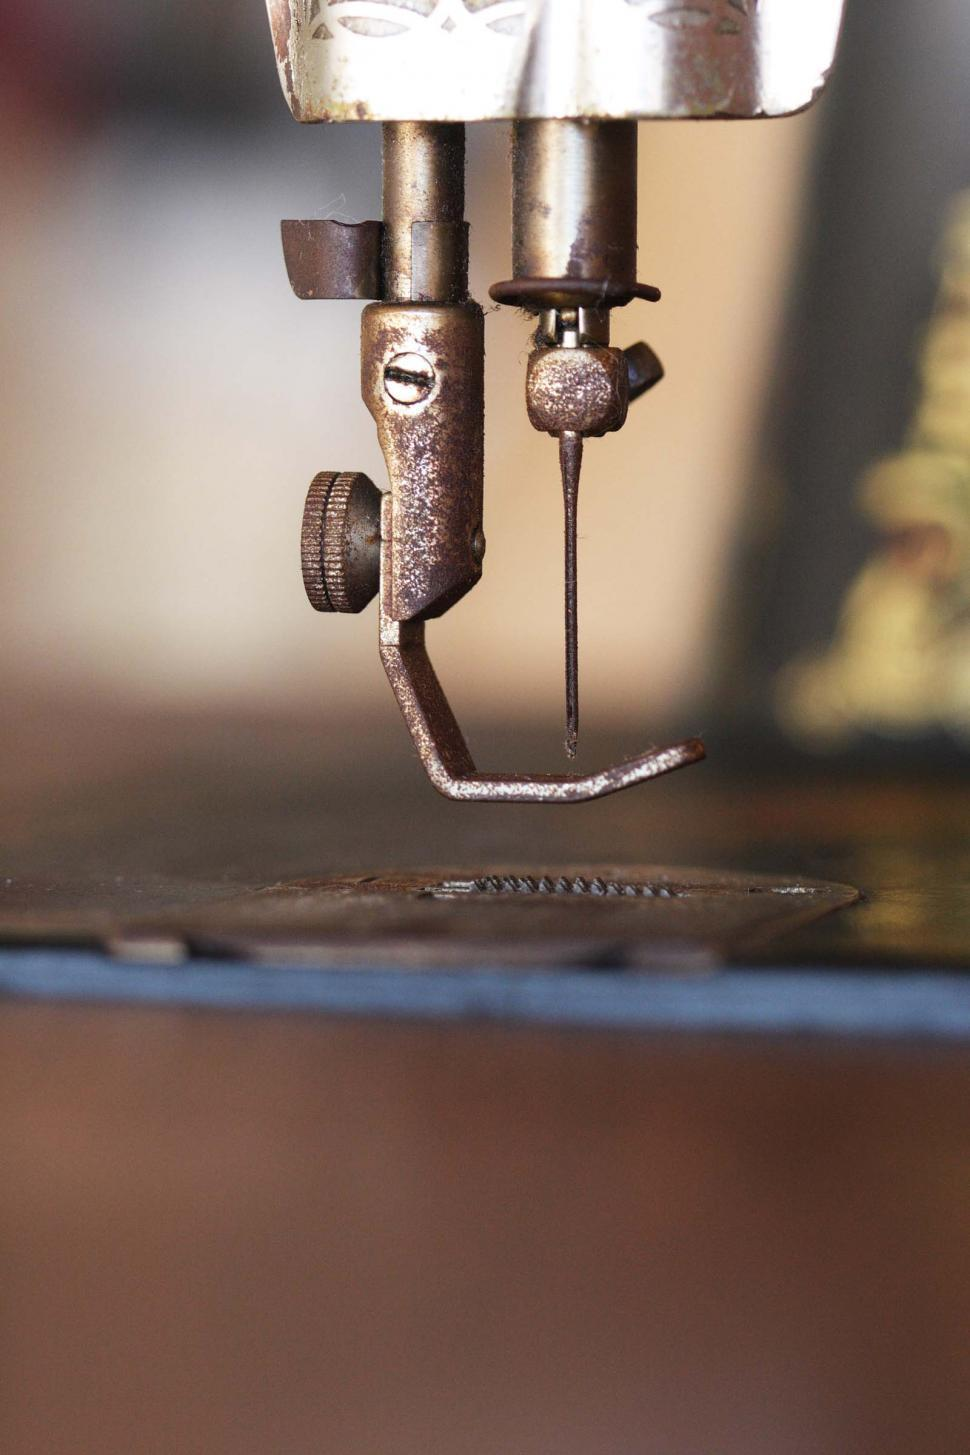 Download Free Stock HD Photo of Sewing machine foot Online